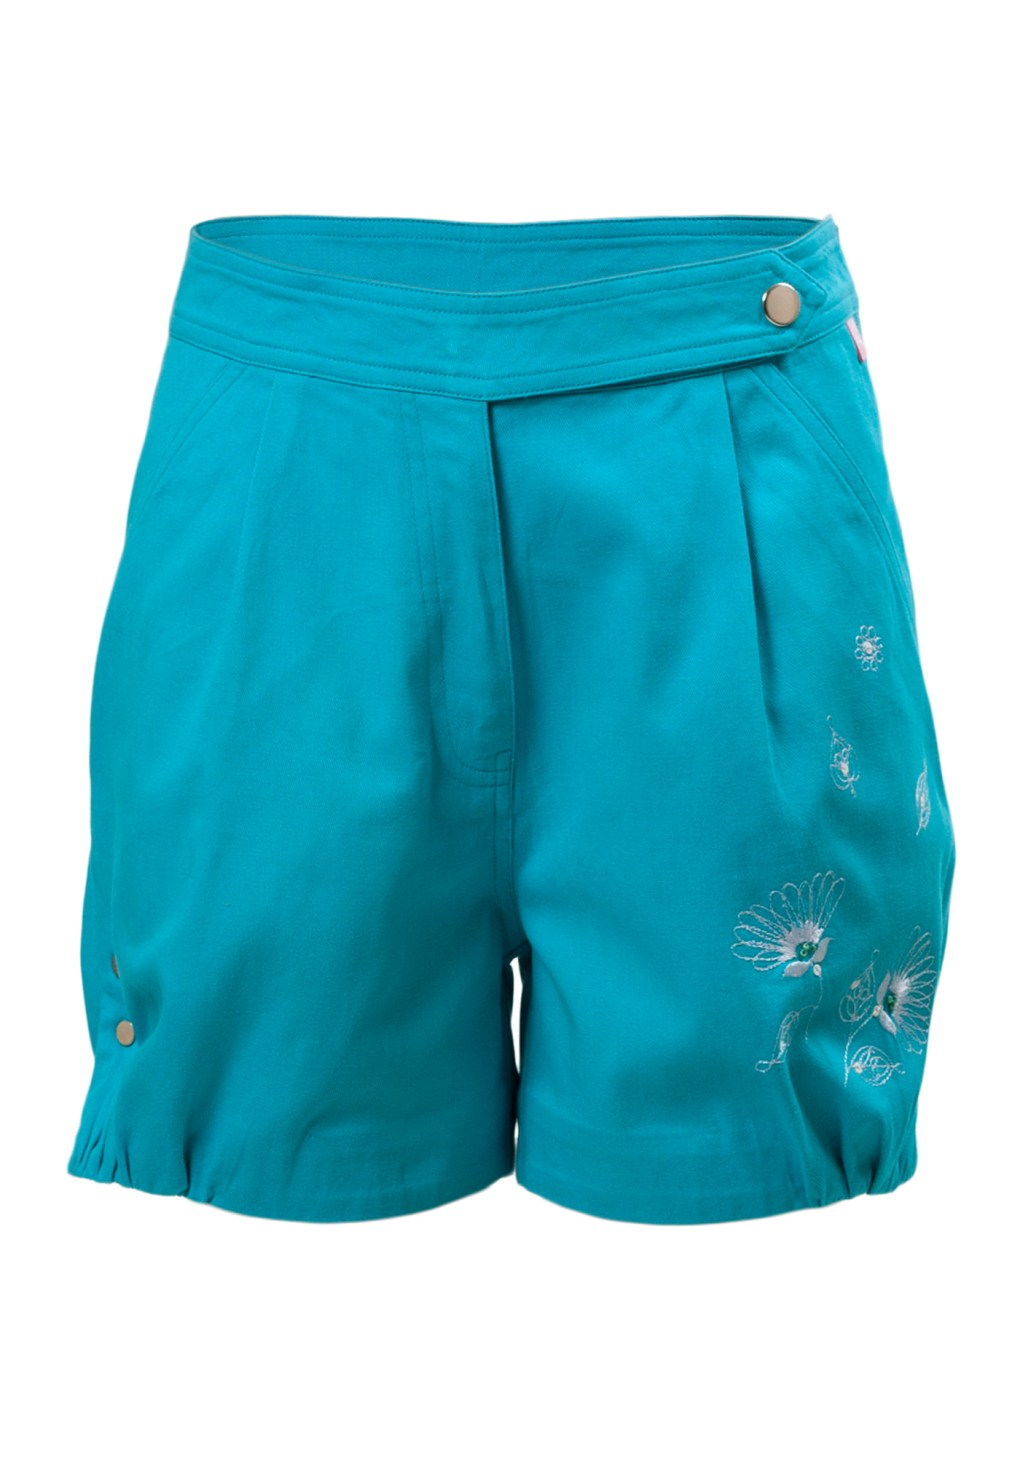 MINC Petite Blue Lagoon Embroidered Girls Shorts in Cotton Twill